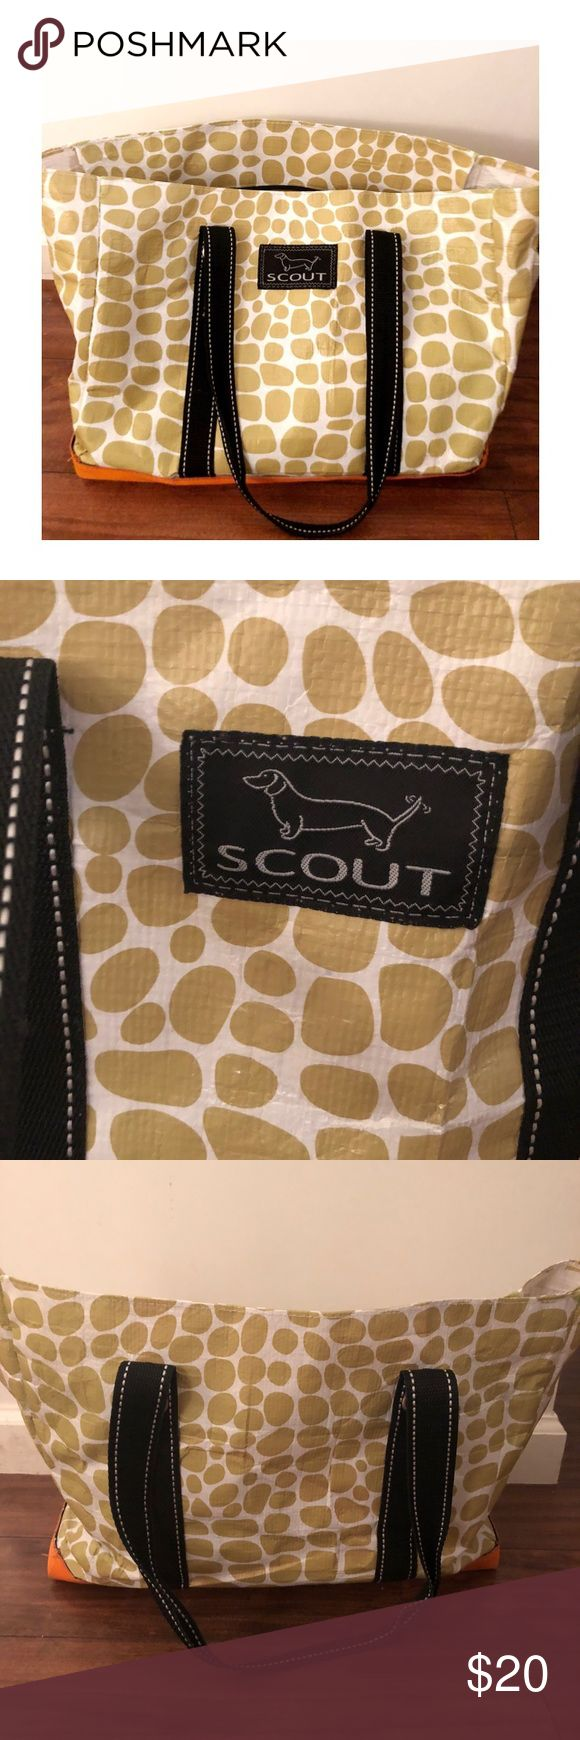 {SCOUT BAGS} Original Deano in Gold Giraffe Print All-weather woven fabric has all the qualities necessary for those who put function first. Measures 19-inches wide by 15-inches high by 10-inches deep Strap drop measures 8-1/4-inches long This tote is ideal for carrying pretty much everything Folds flat for easy storage Interior key ring; Sturdy faux leather base It's lightweight, durable, water resistant, and easy to clean; Hose or wipe clean, with or without soap — it's just that simple…